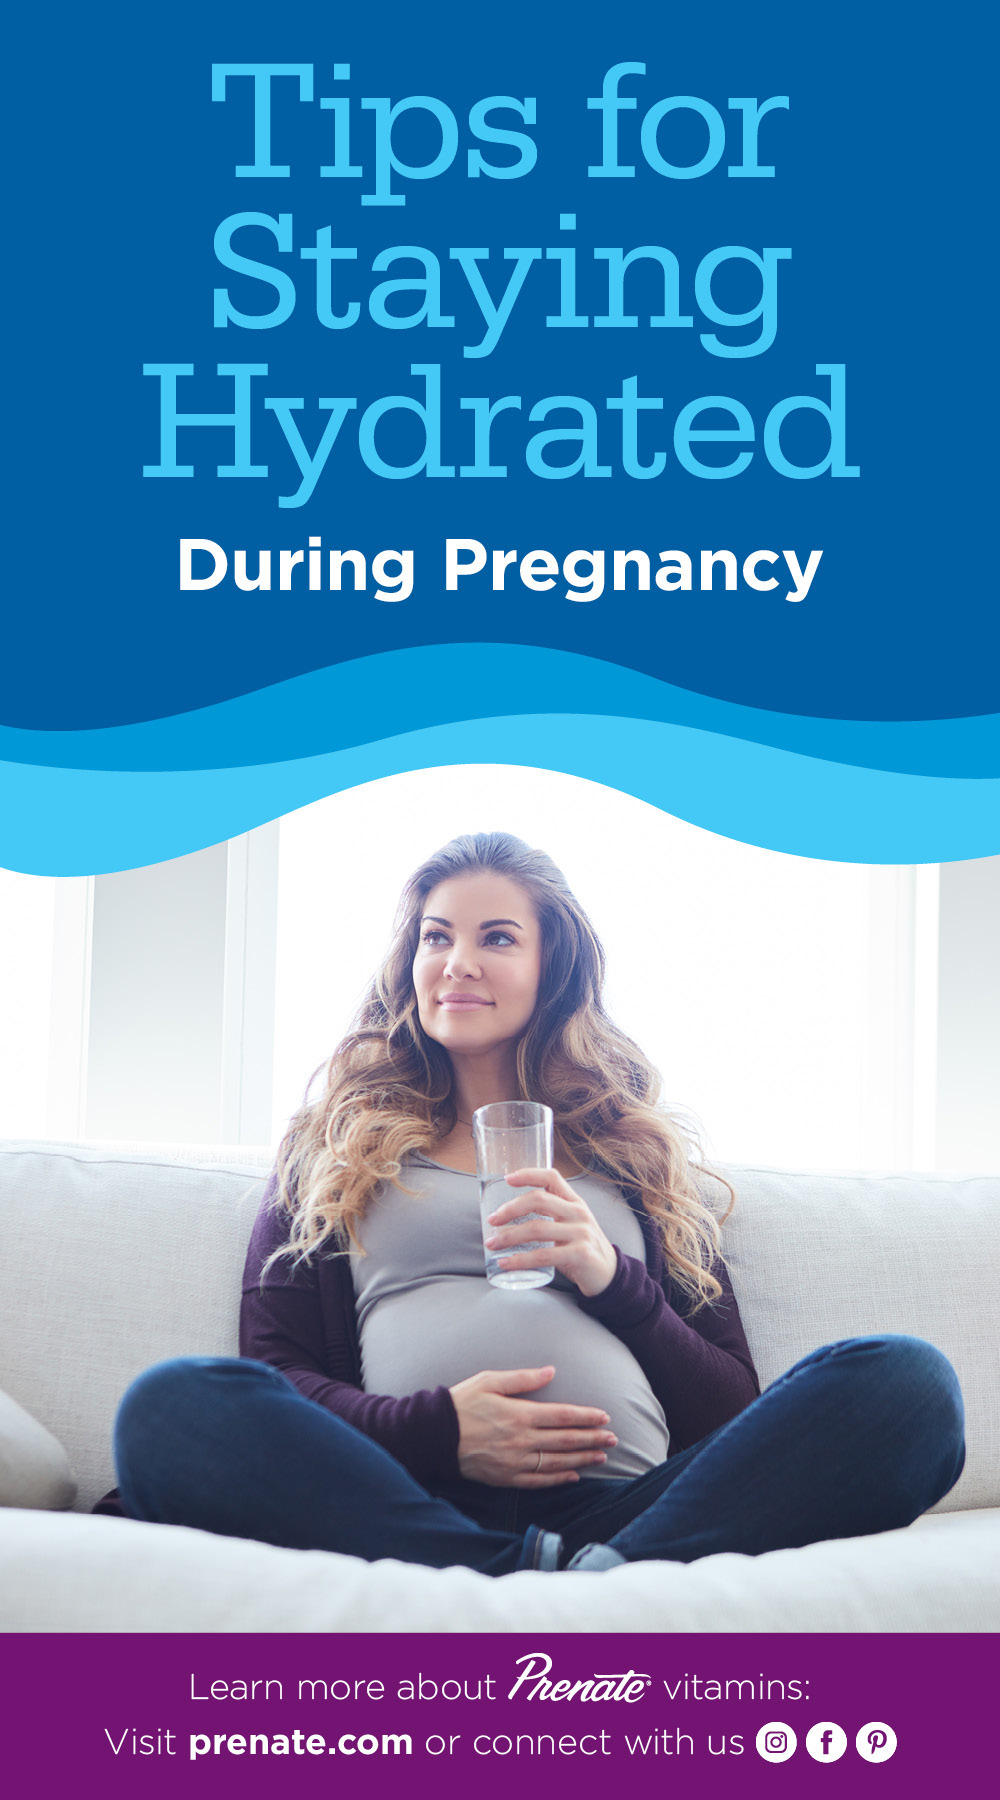 Staying hydrated while pregnant